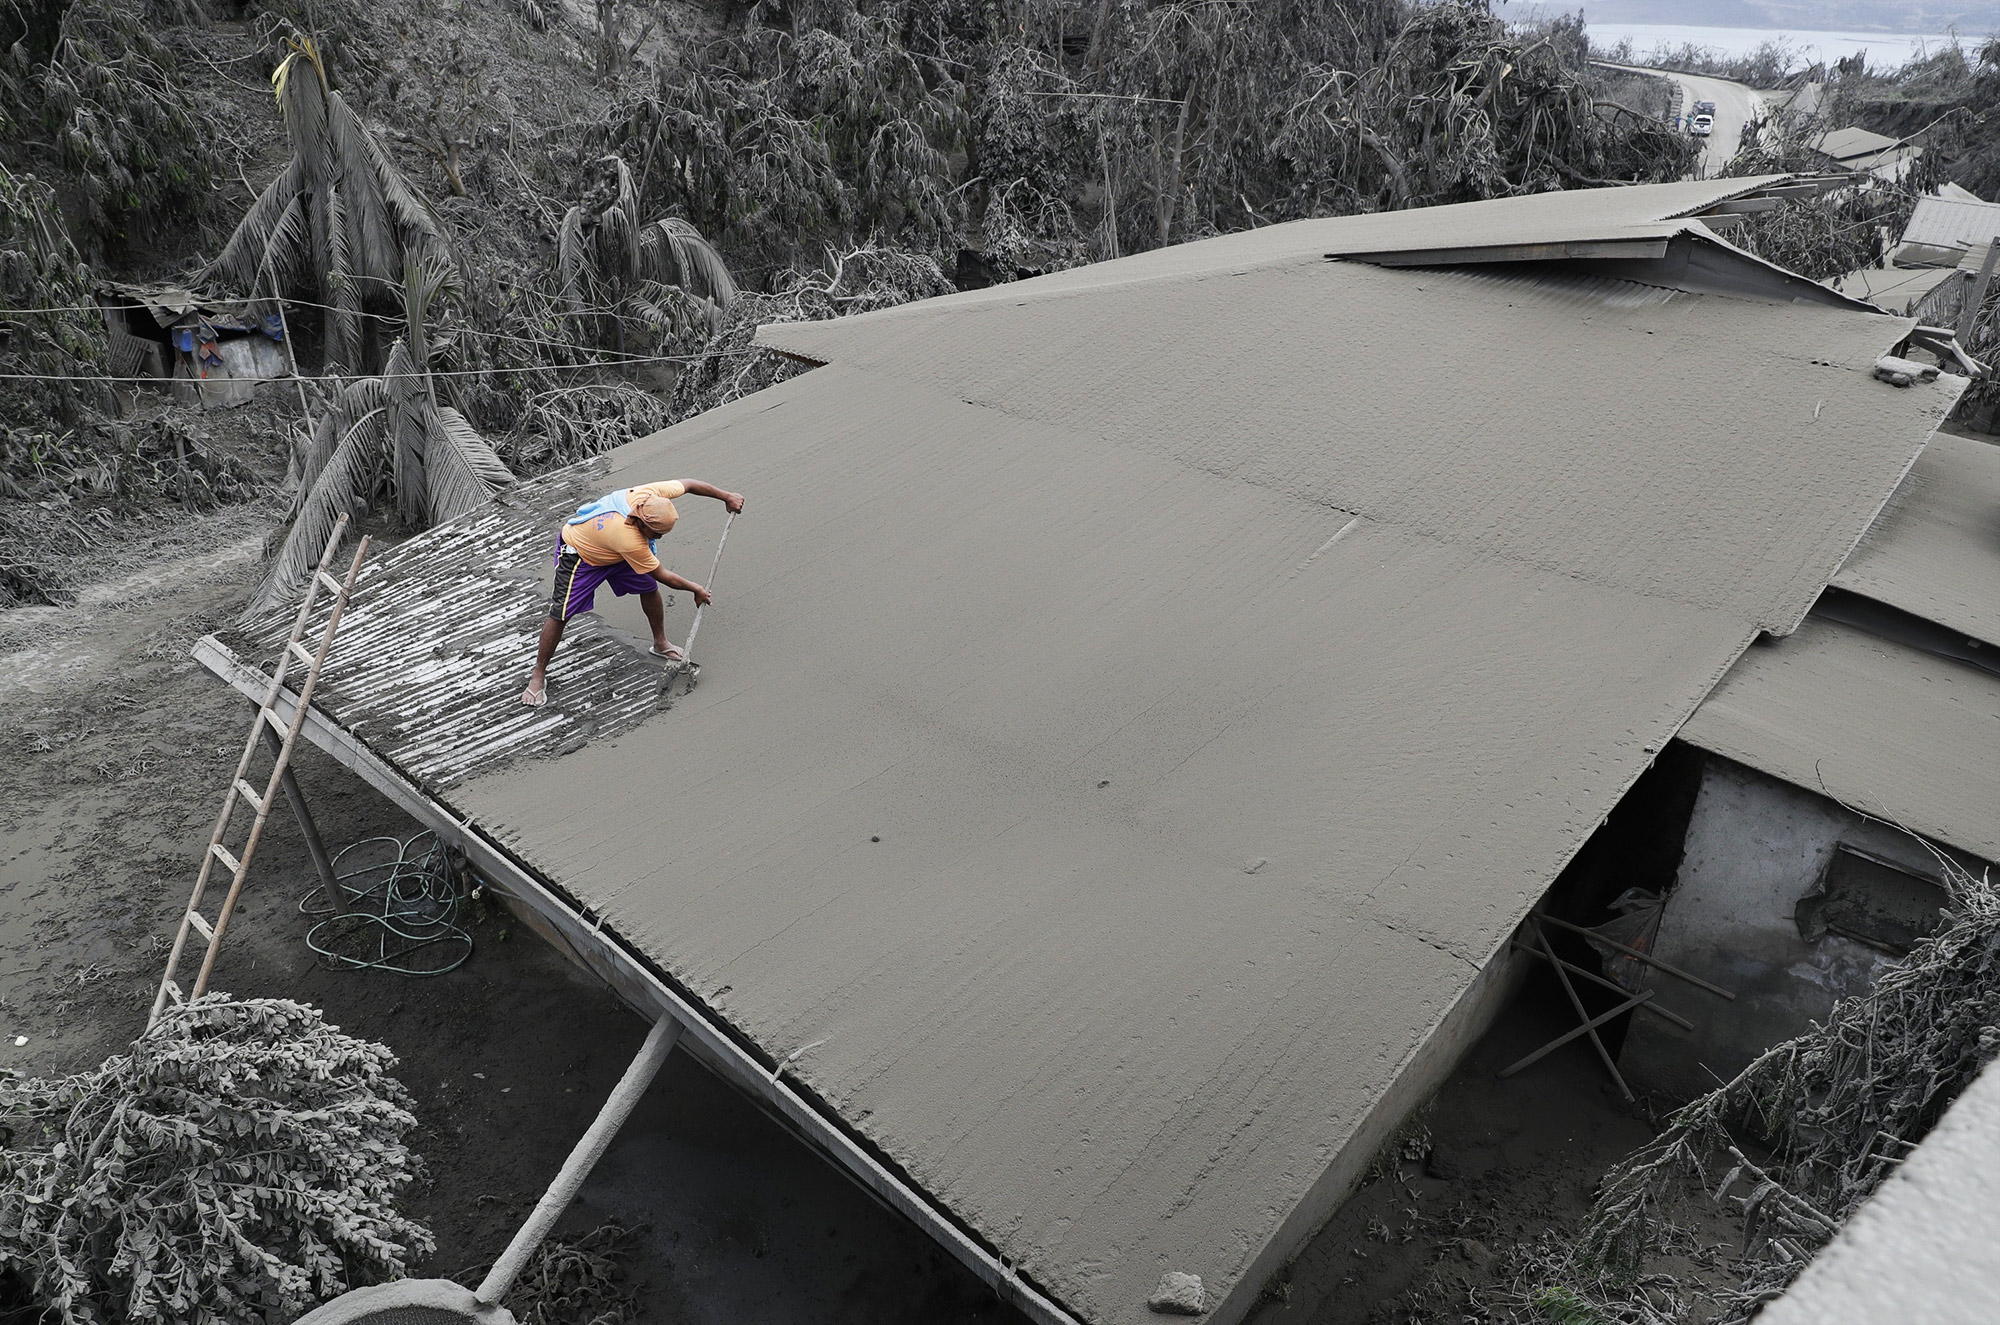 A resident clears volcanic ash from his roof in Laurel, Batangas province, southern Philippines on Tuesday, Jan. 14, 2020. Taal volcano is spewing ash half a mile high and trembling with earthquakes constantly as thousands of people flee villages darkened and blanketed by heavy ash. (AP Photo/Aaron Favila), APTOPIX